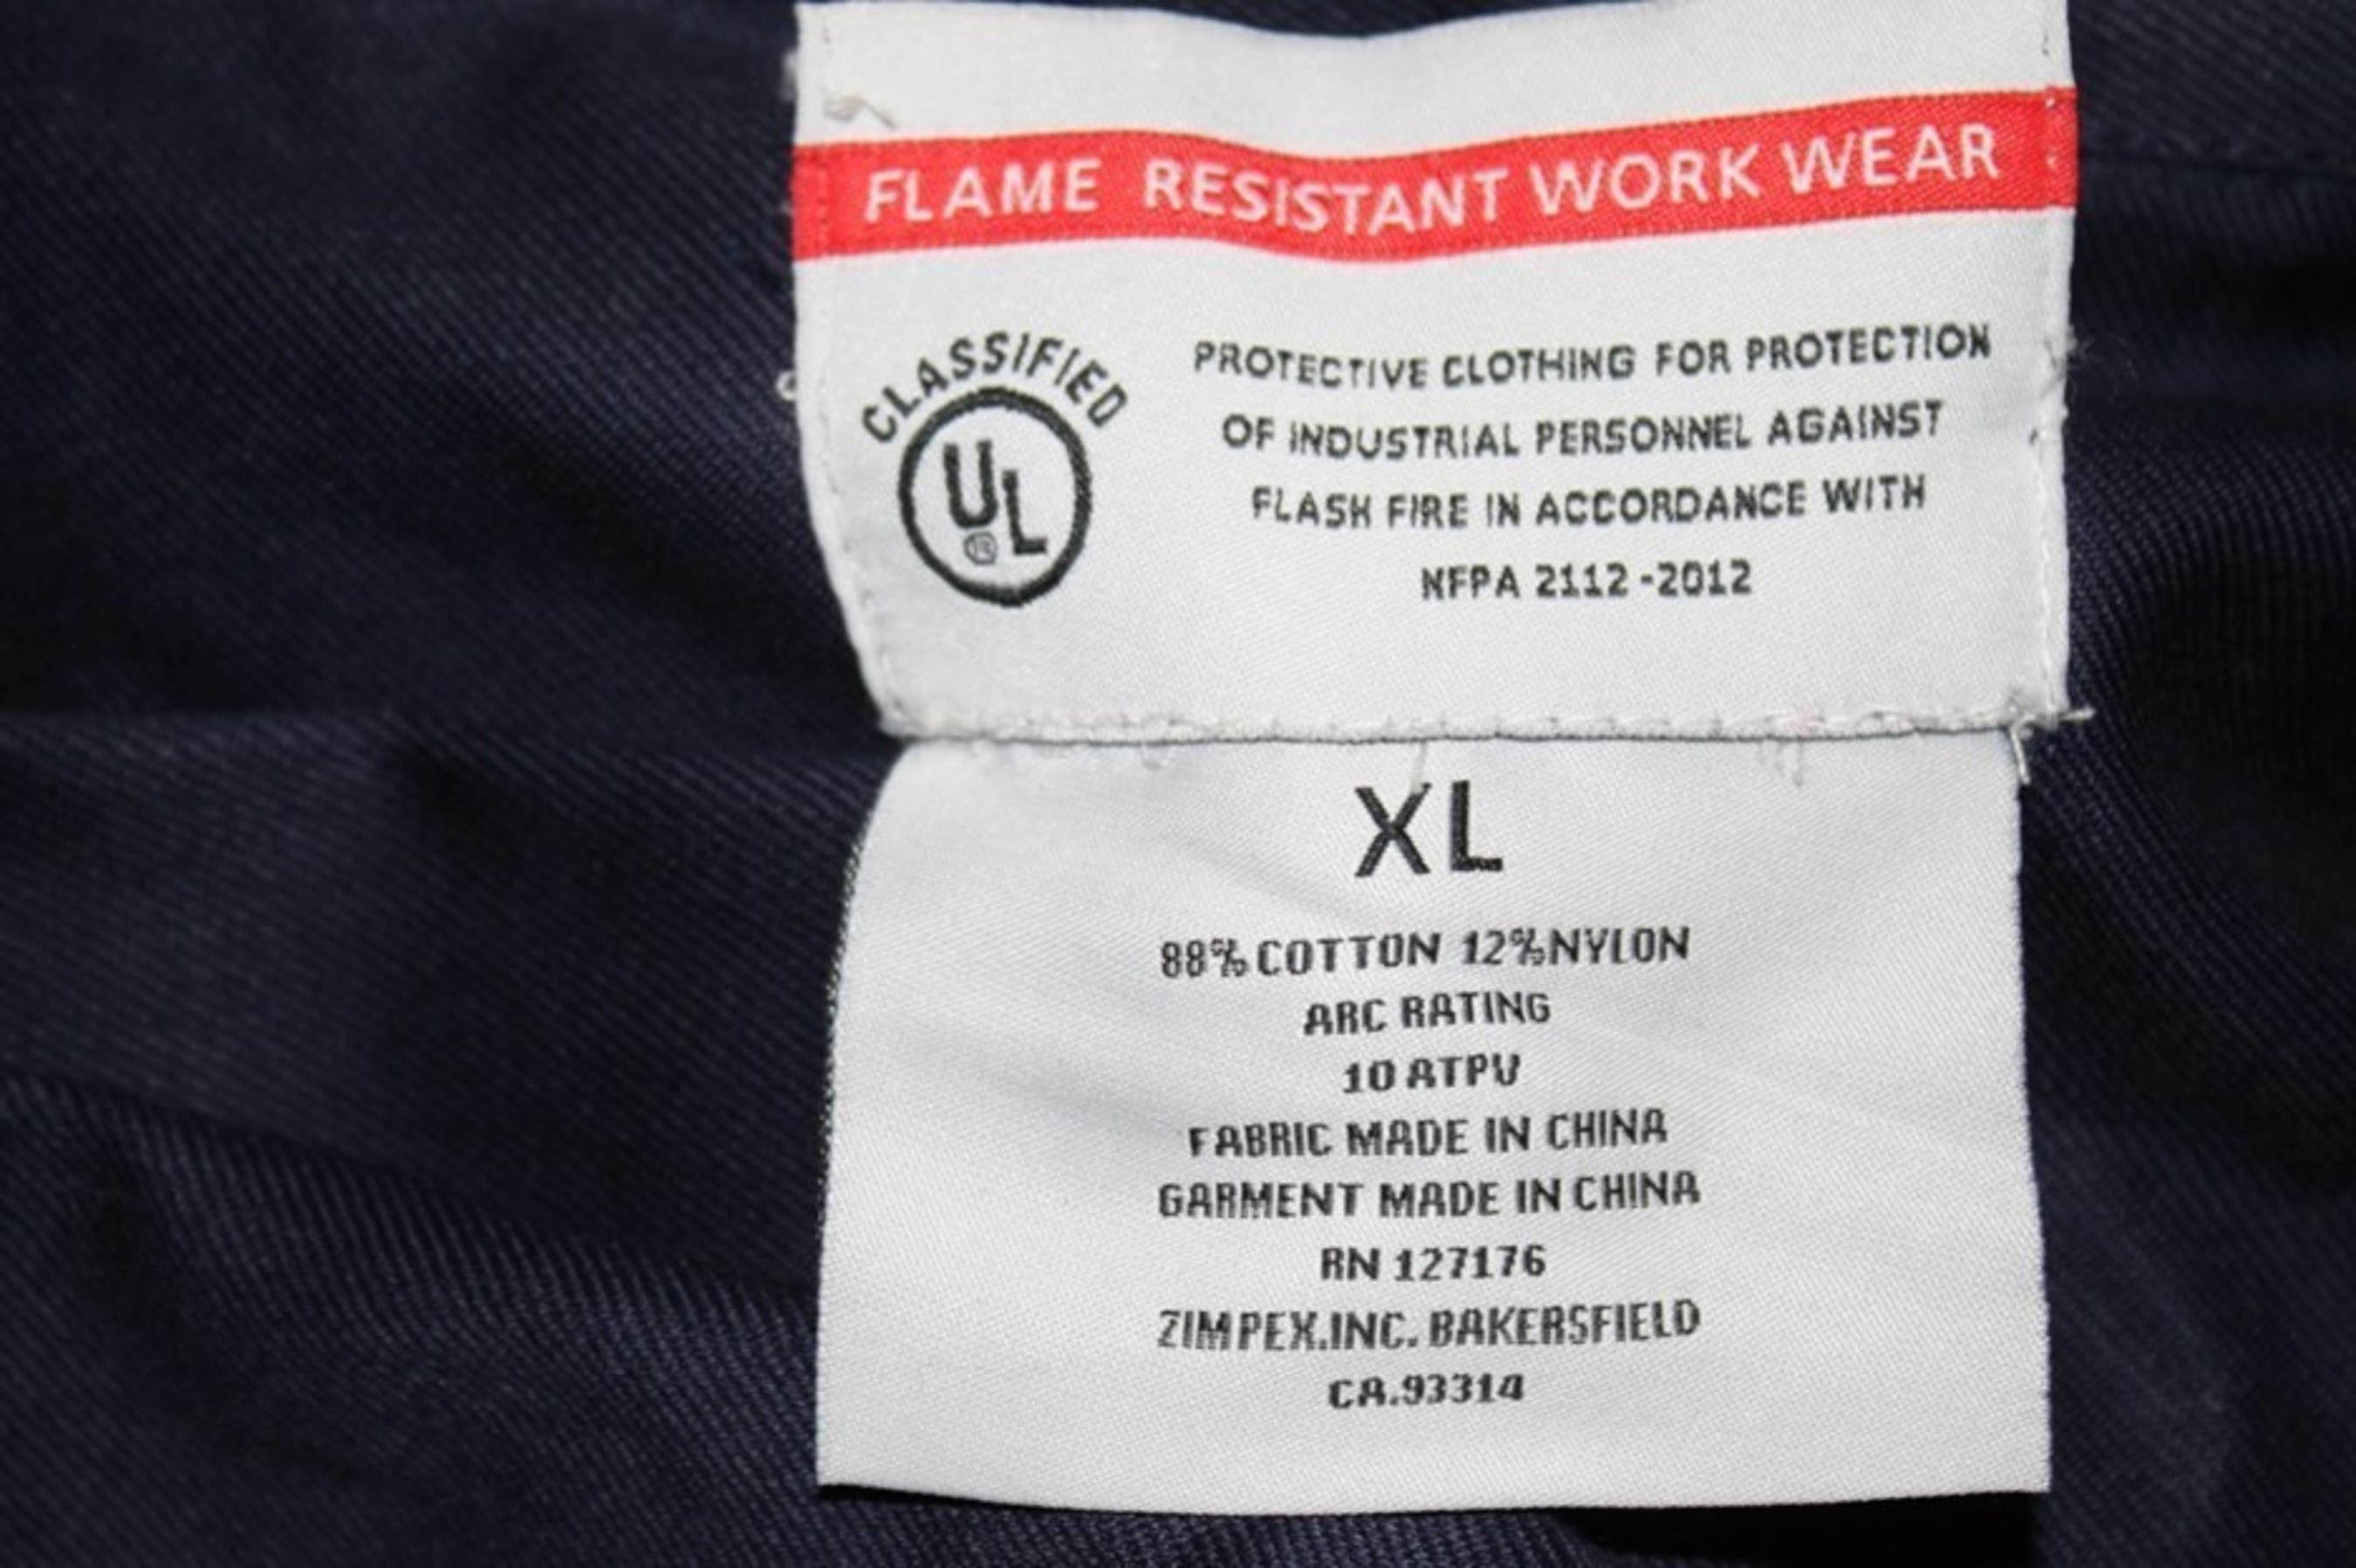 Picture of counterfeit UL label on collar of coveralls: